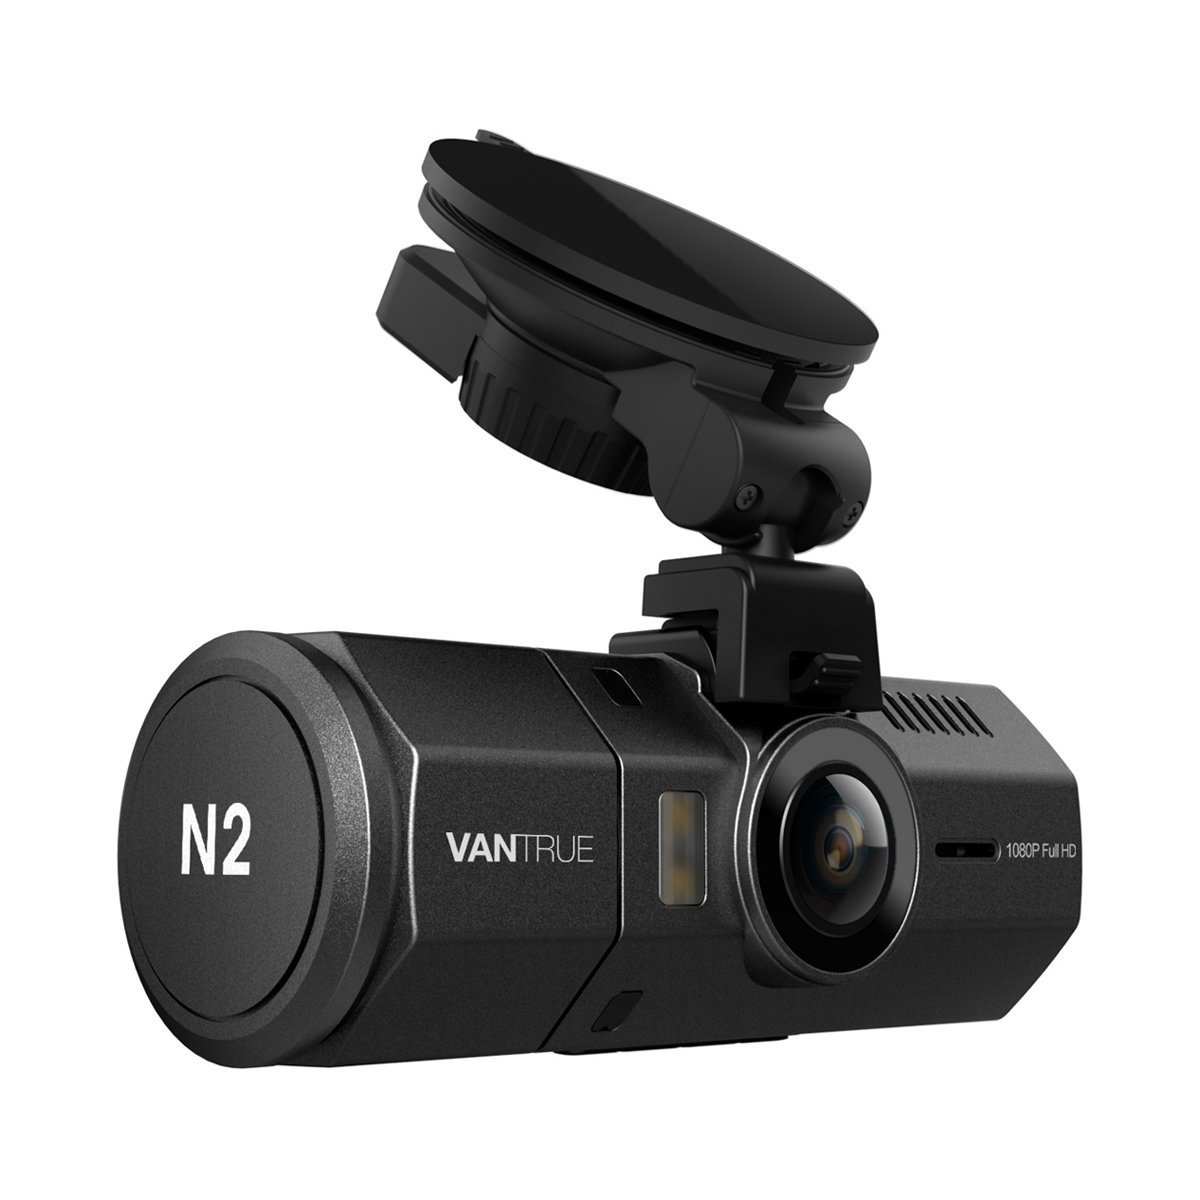 [UPGRADED] Vantrue N2 Dual Dash Cam - 1080P Front and Rear Dual Lens Car Camera 1.5'' Near-360° Wide Angle Dashboard Camera Car DVR Video Recorder w/ Parking Mode, G-Sensor, HDR & Super Night Vision by VANTRUE